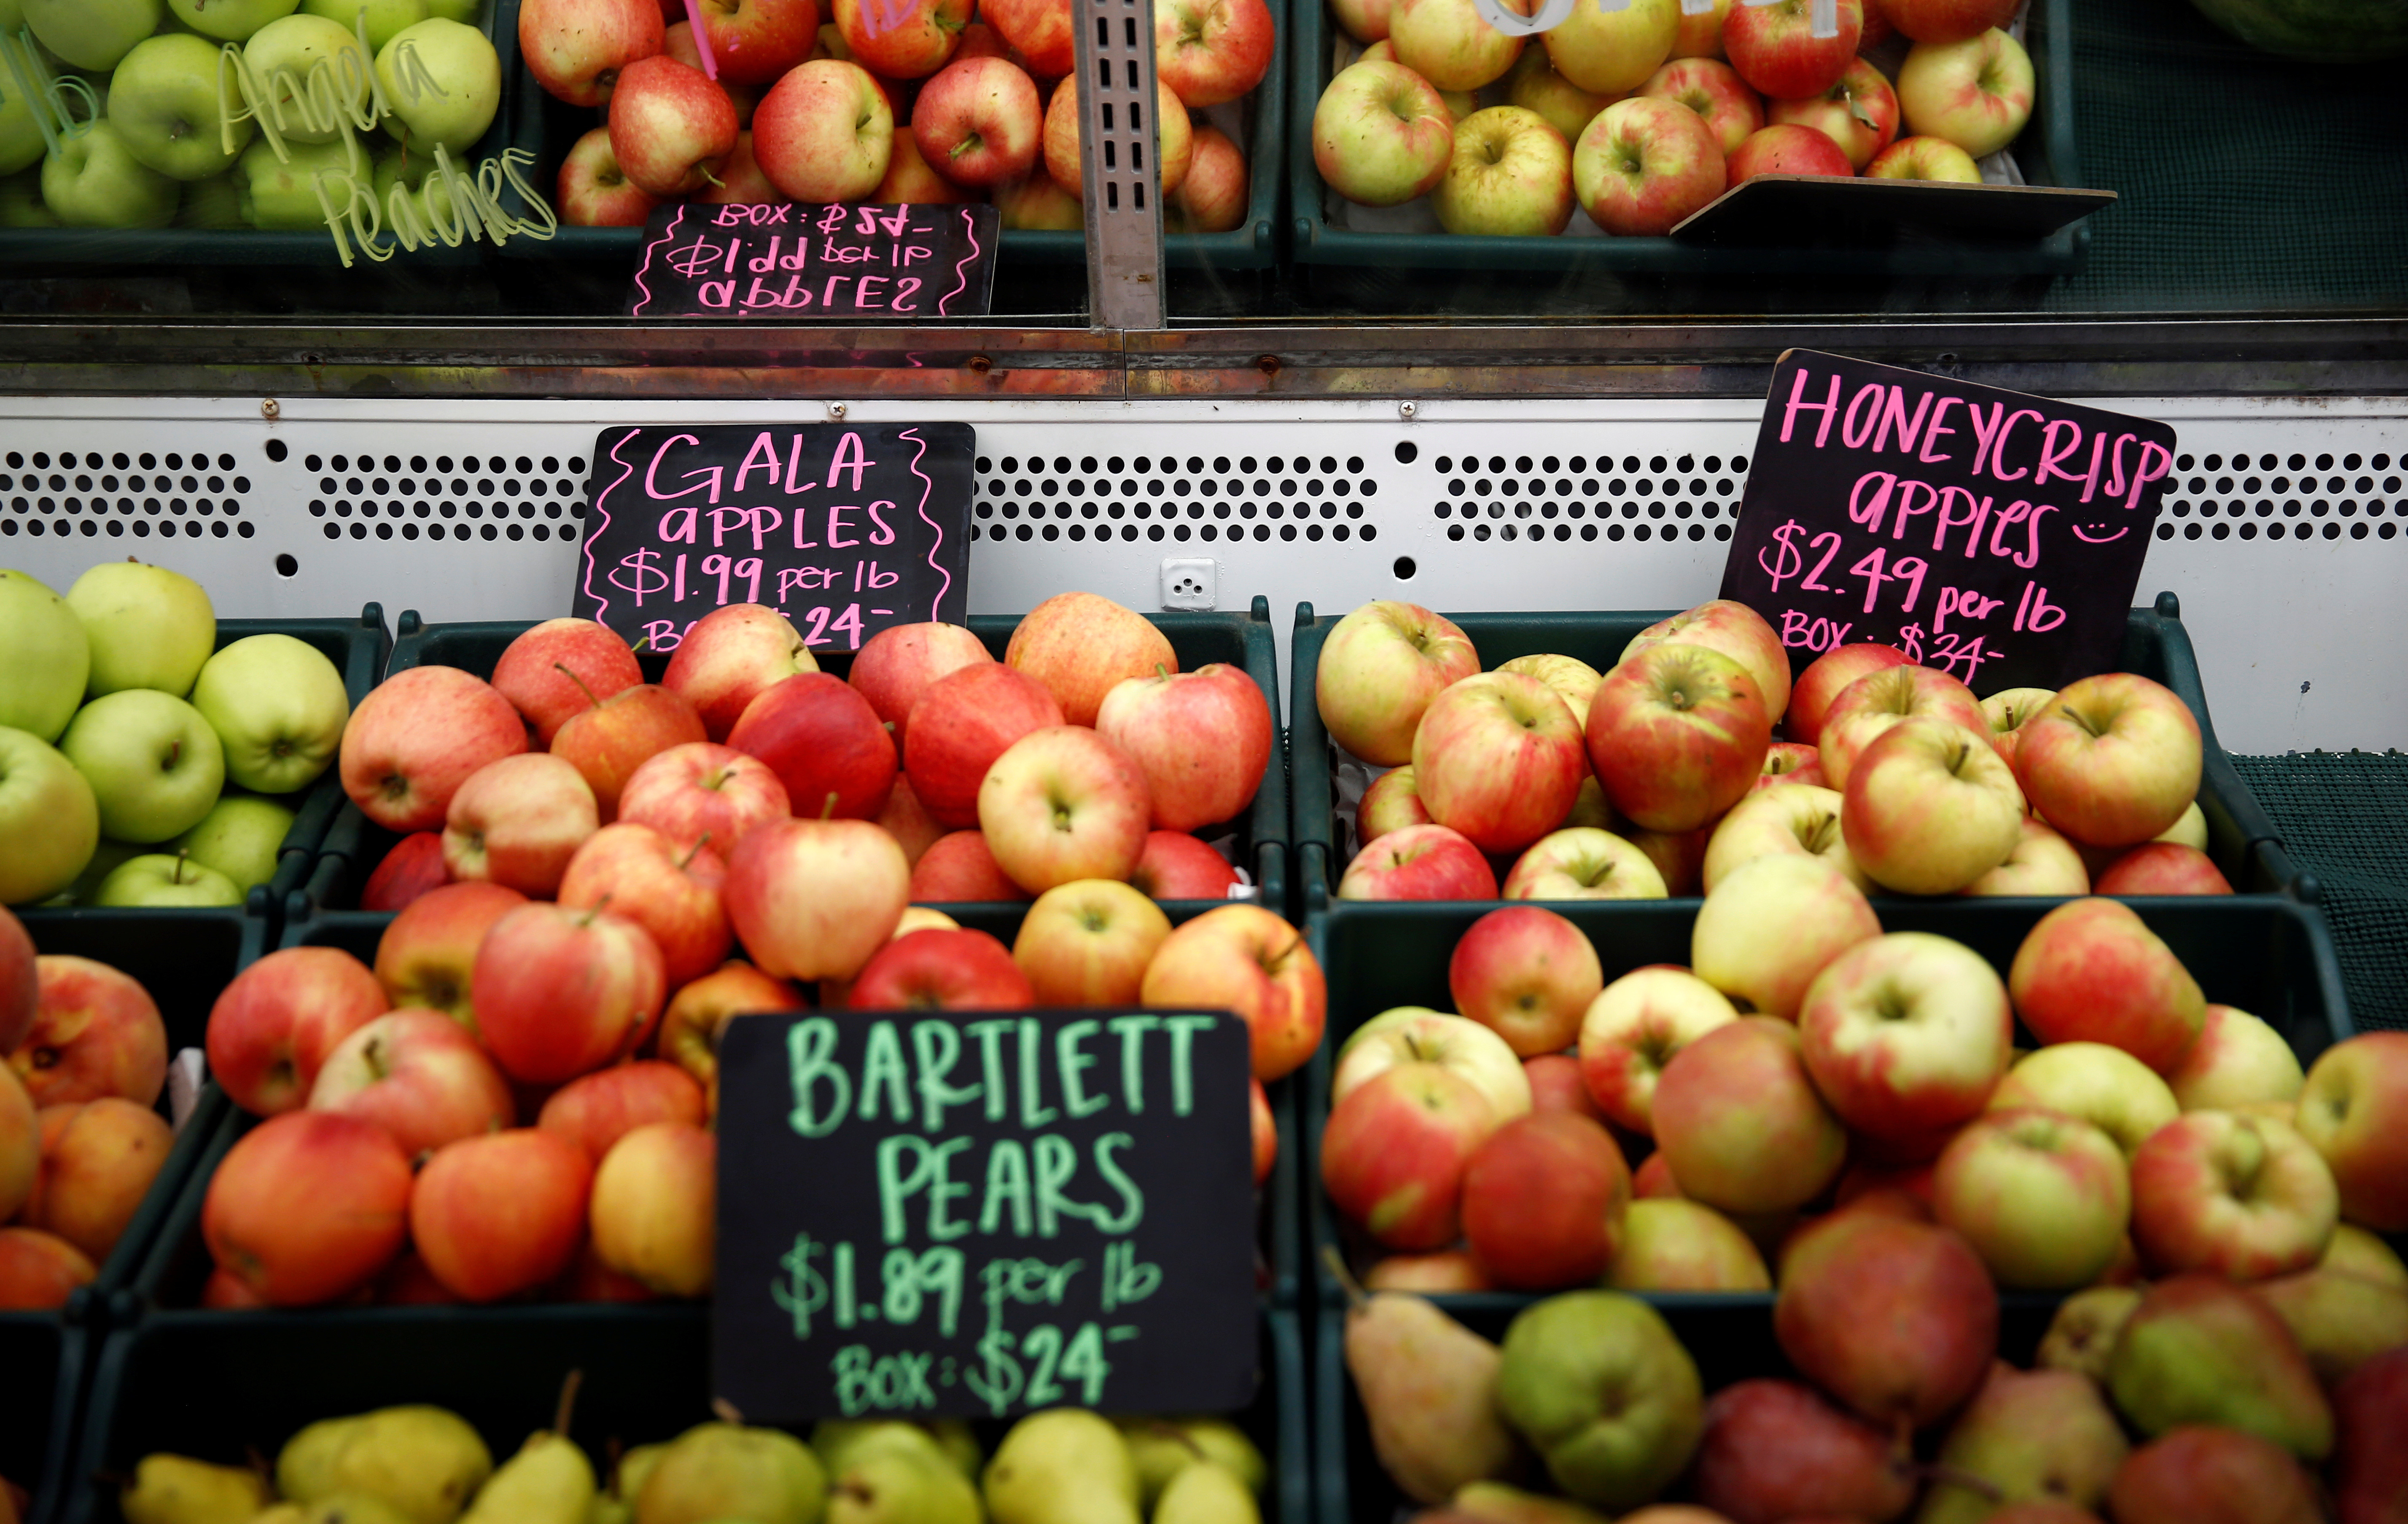 Gala apples, Bartlett pears and Honeycrisp apples are pictured at Estes Fruit Stand in East Wenatchee, Washington, U.S., September 2, 2018. Picture taken September 2, 2018.  REUTERS/Lindsey Wasson - RC184A59B0B0